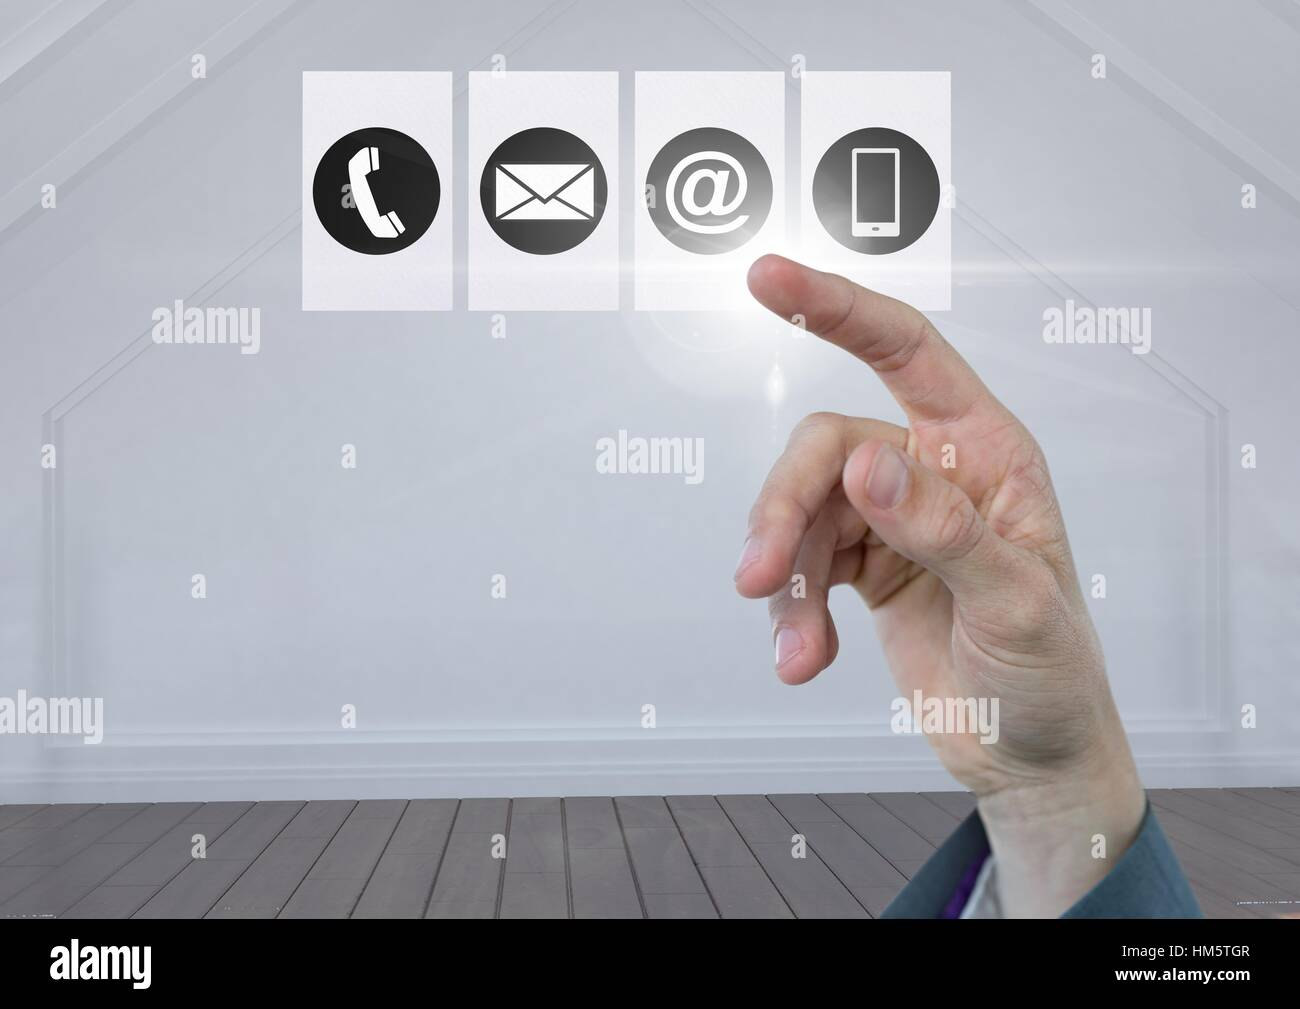 Businessperson touching digitally generated connecting icons - Stock Image